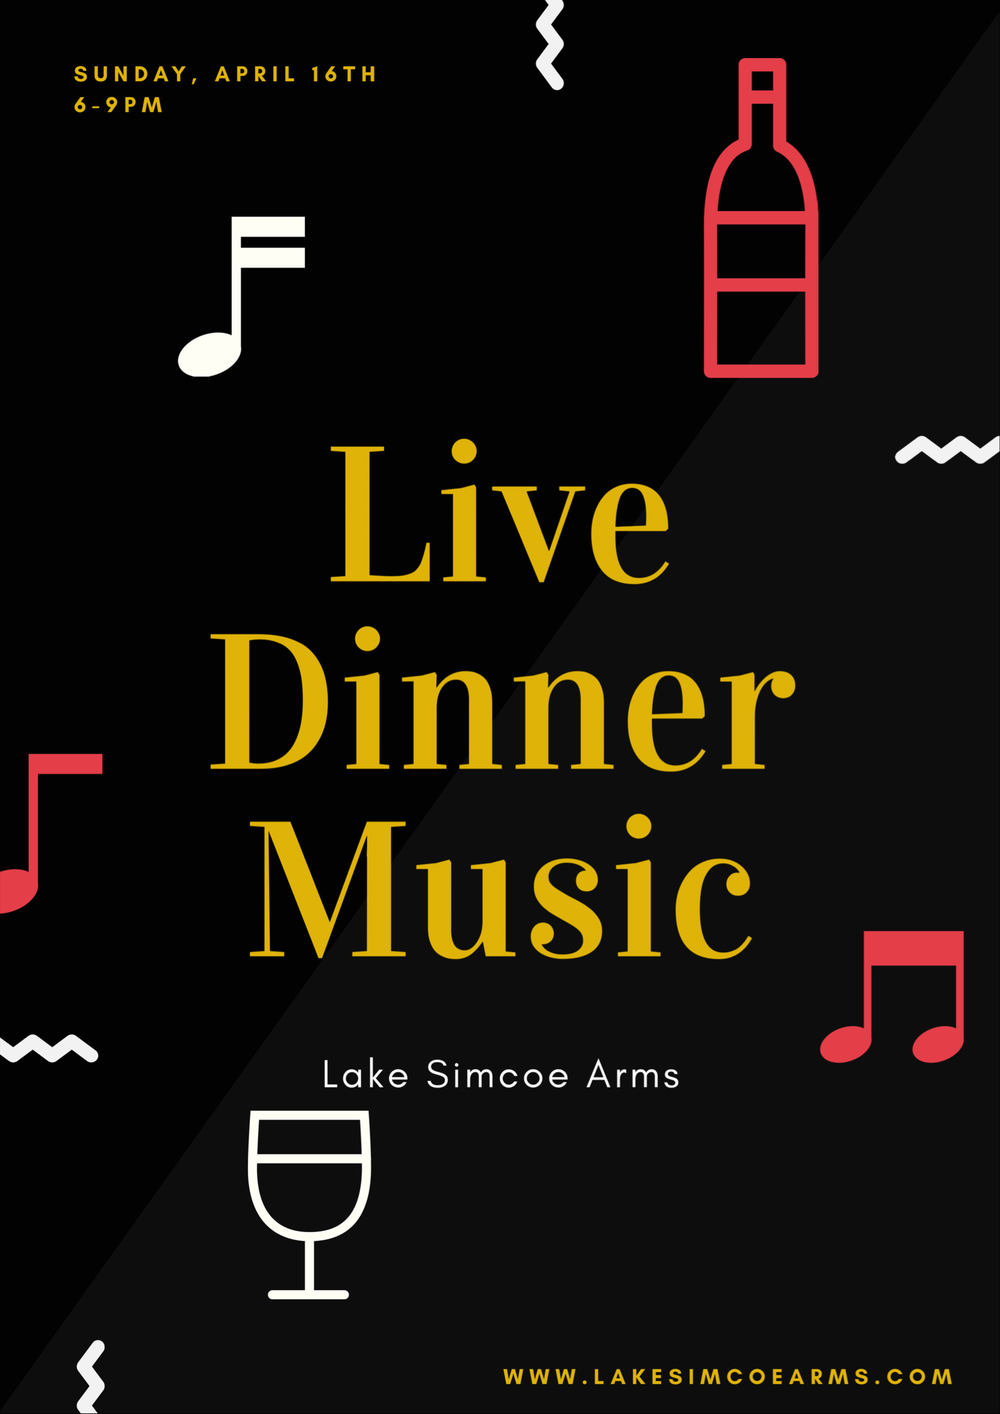 Sunday, April 16th - Live Dinner Music from 6-9pm